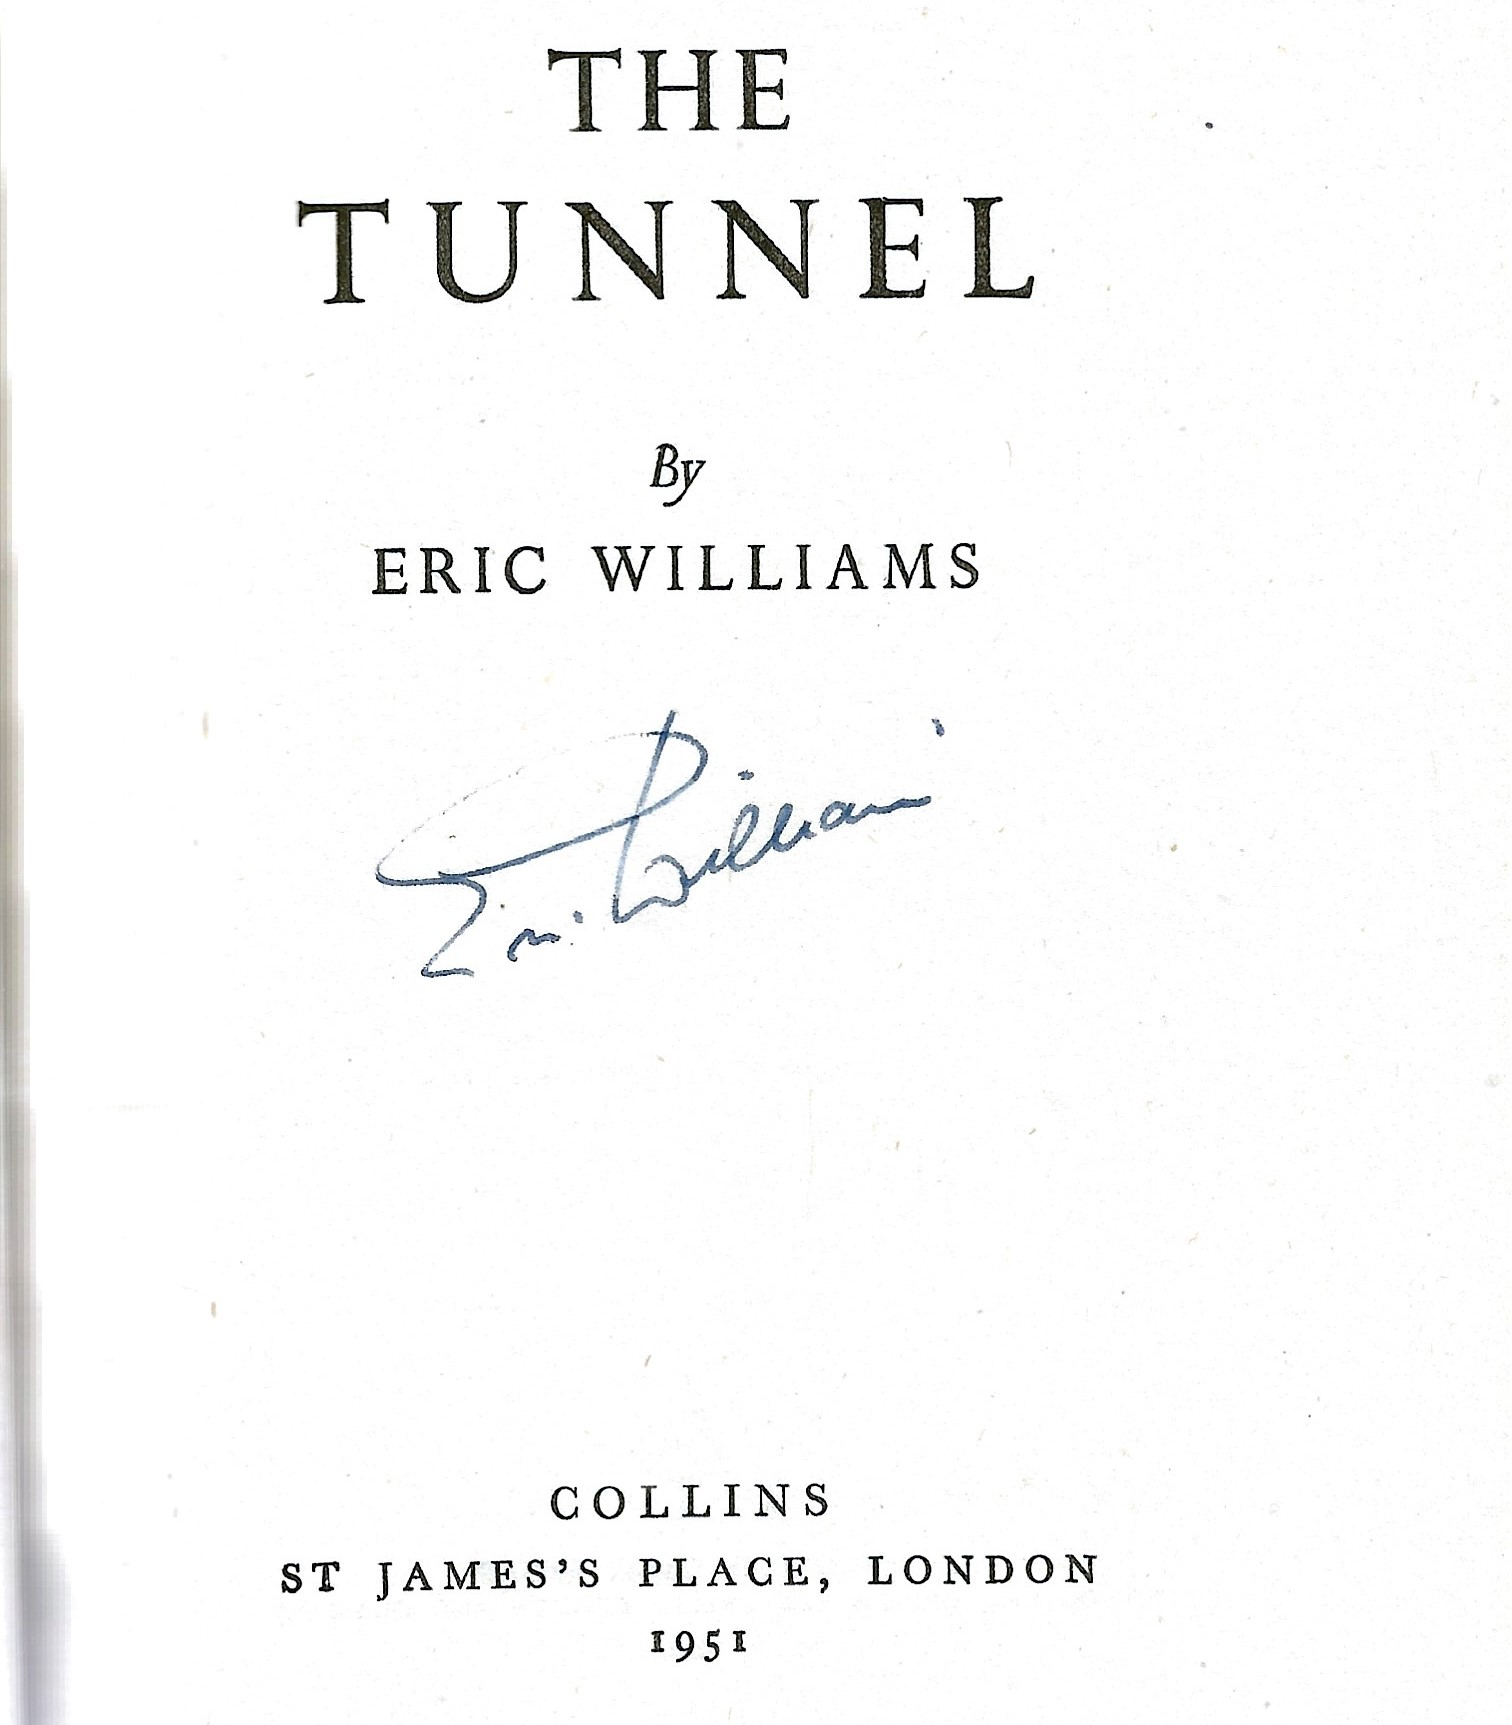 Eric Williams. The Tunnel. A WW2 hardback First Edition Book, showing signs of age. Dedicated and - Image 2 of 2